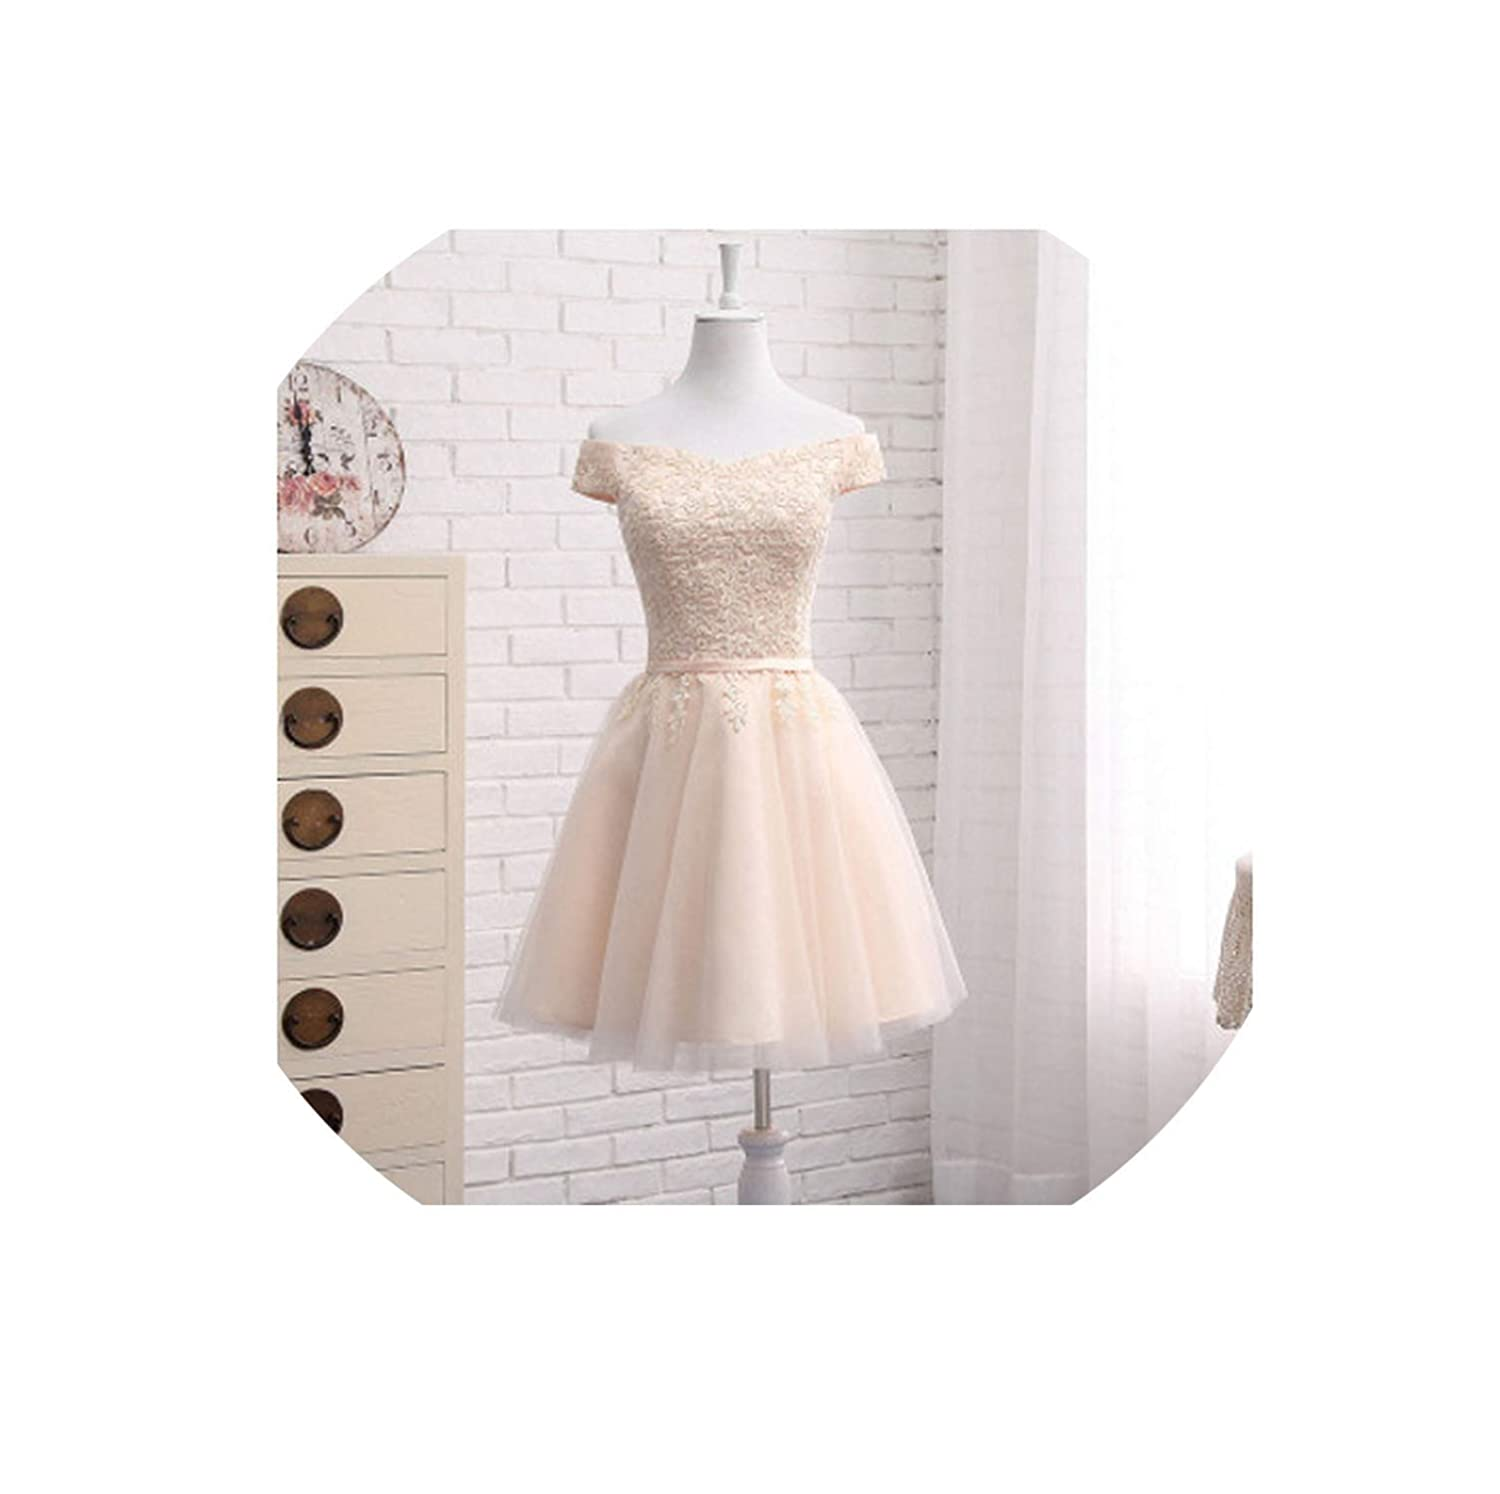 Champagne short Bridesmaid Dresses FloorLength Boat Neck Cap Sleeve Applique Embroidery Dress